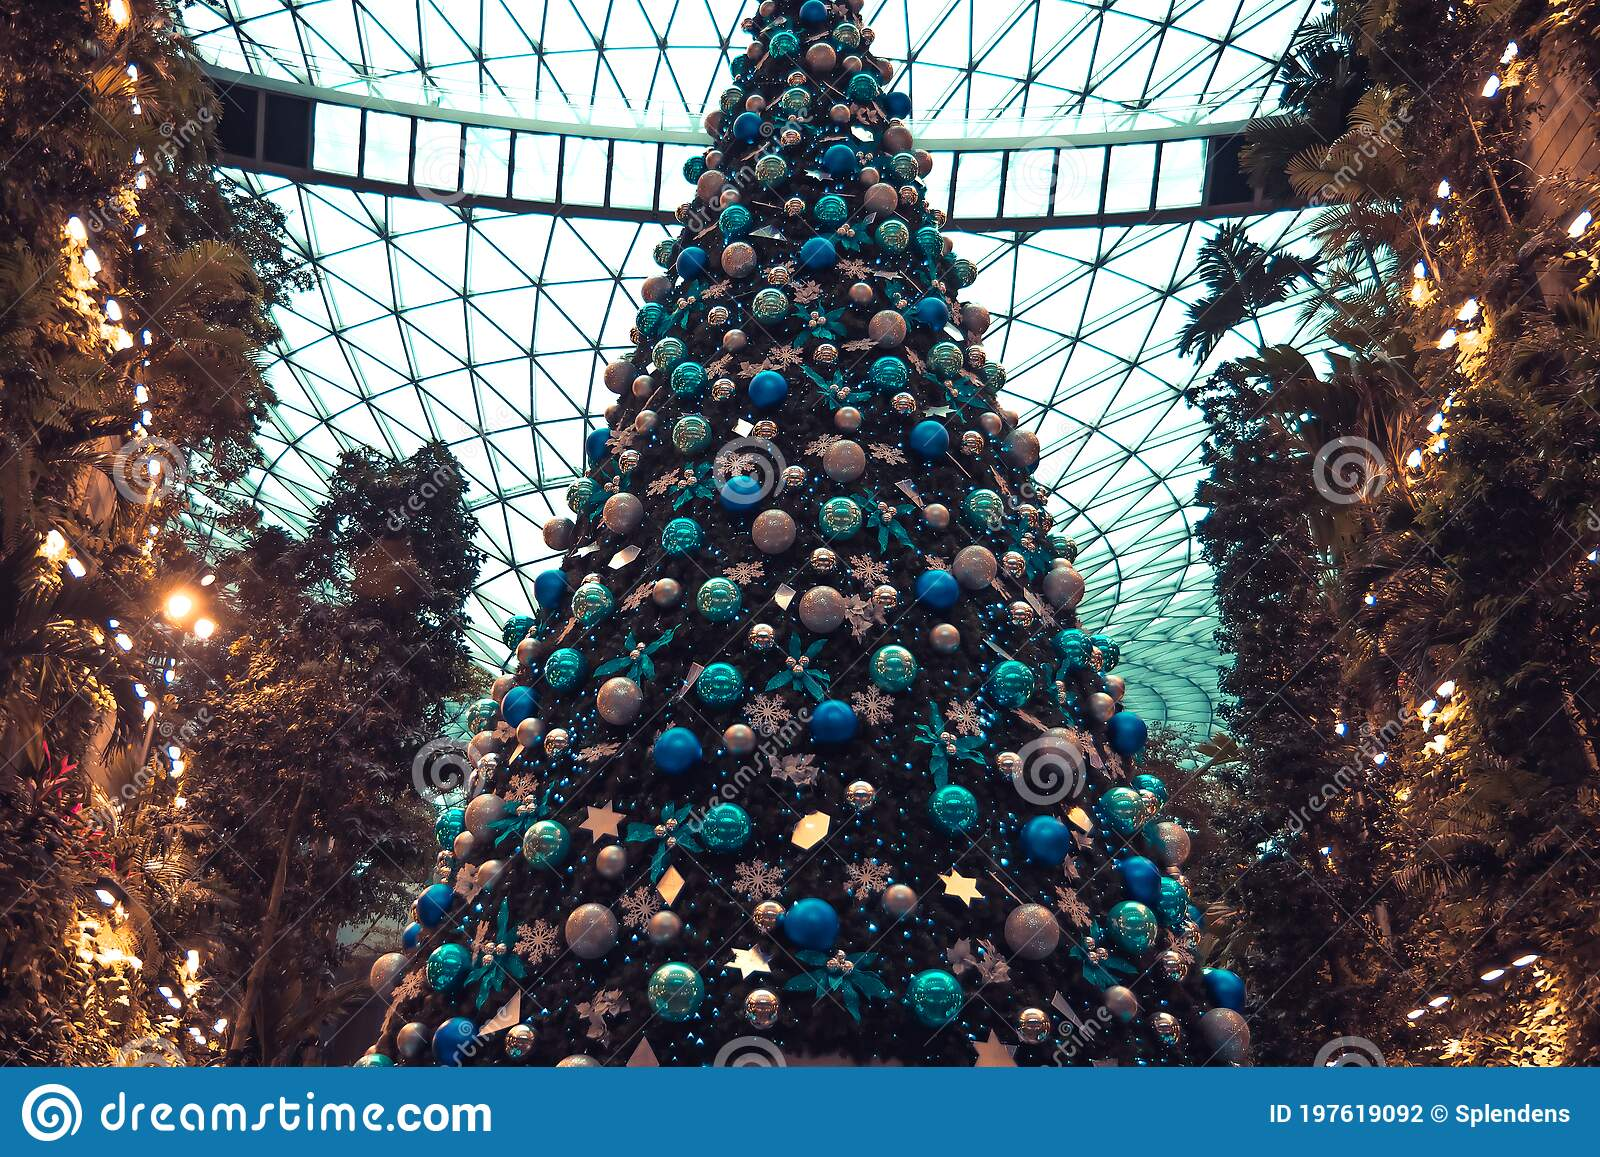 Christmas Tree In Vintage Blue Orange Toned Colors As Christmas Holidays Background Stock Photo Image Of Blue Garland 197619092